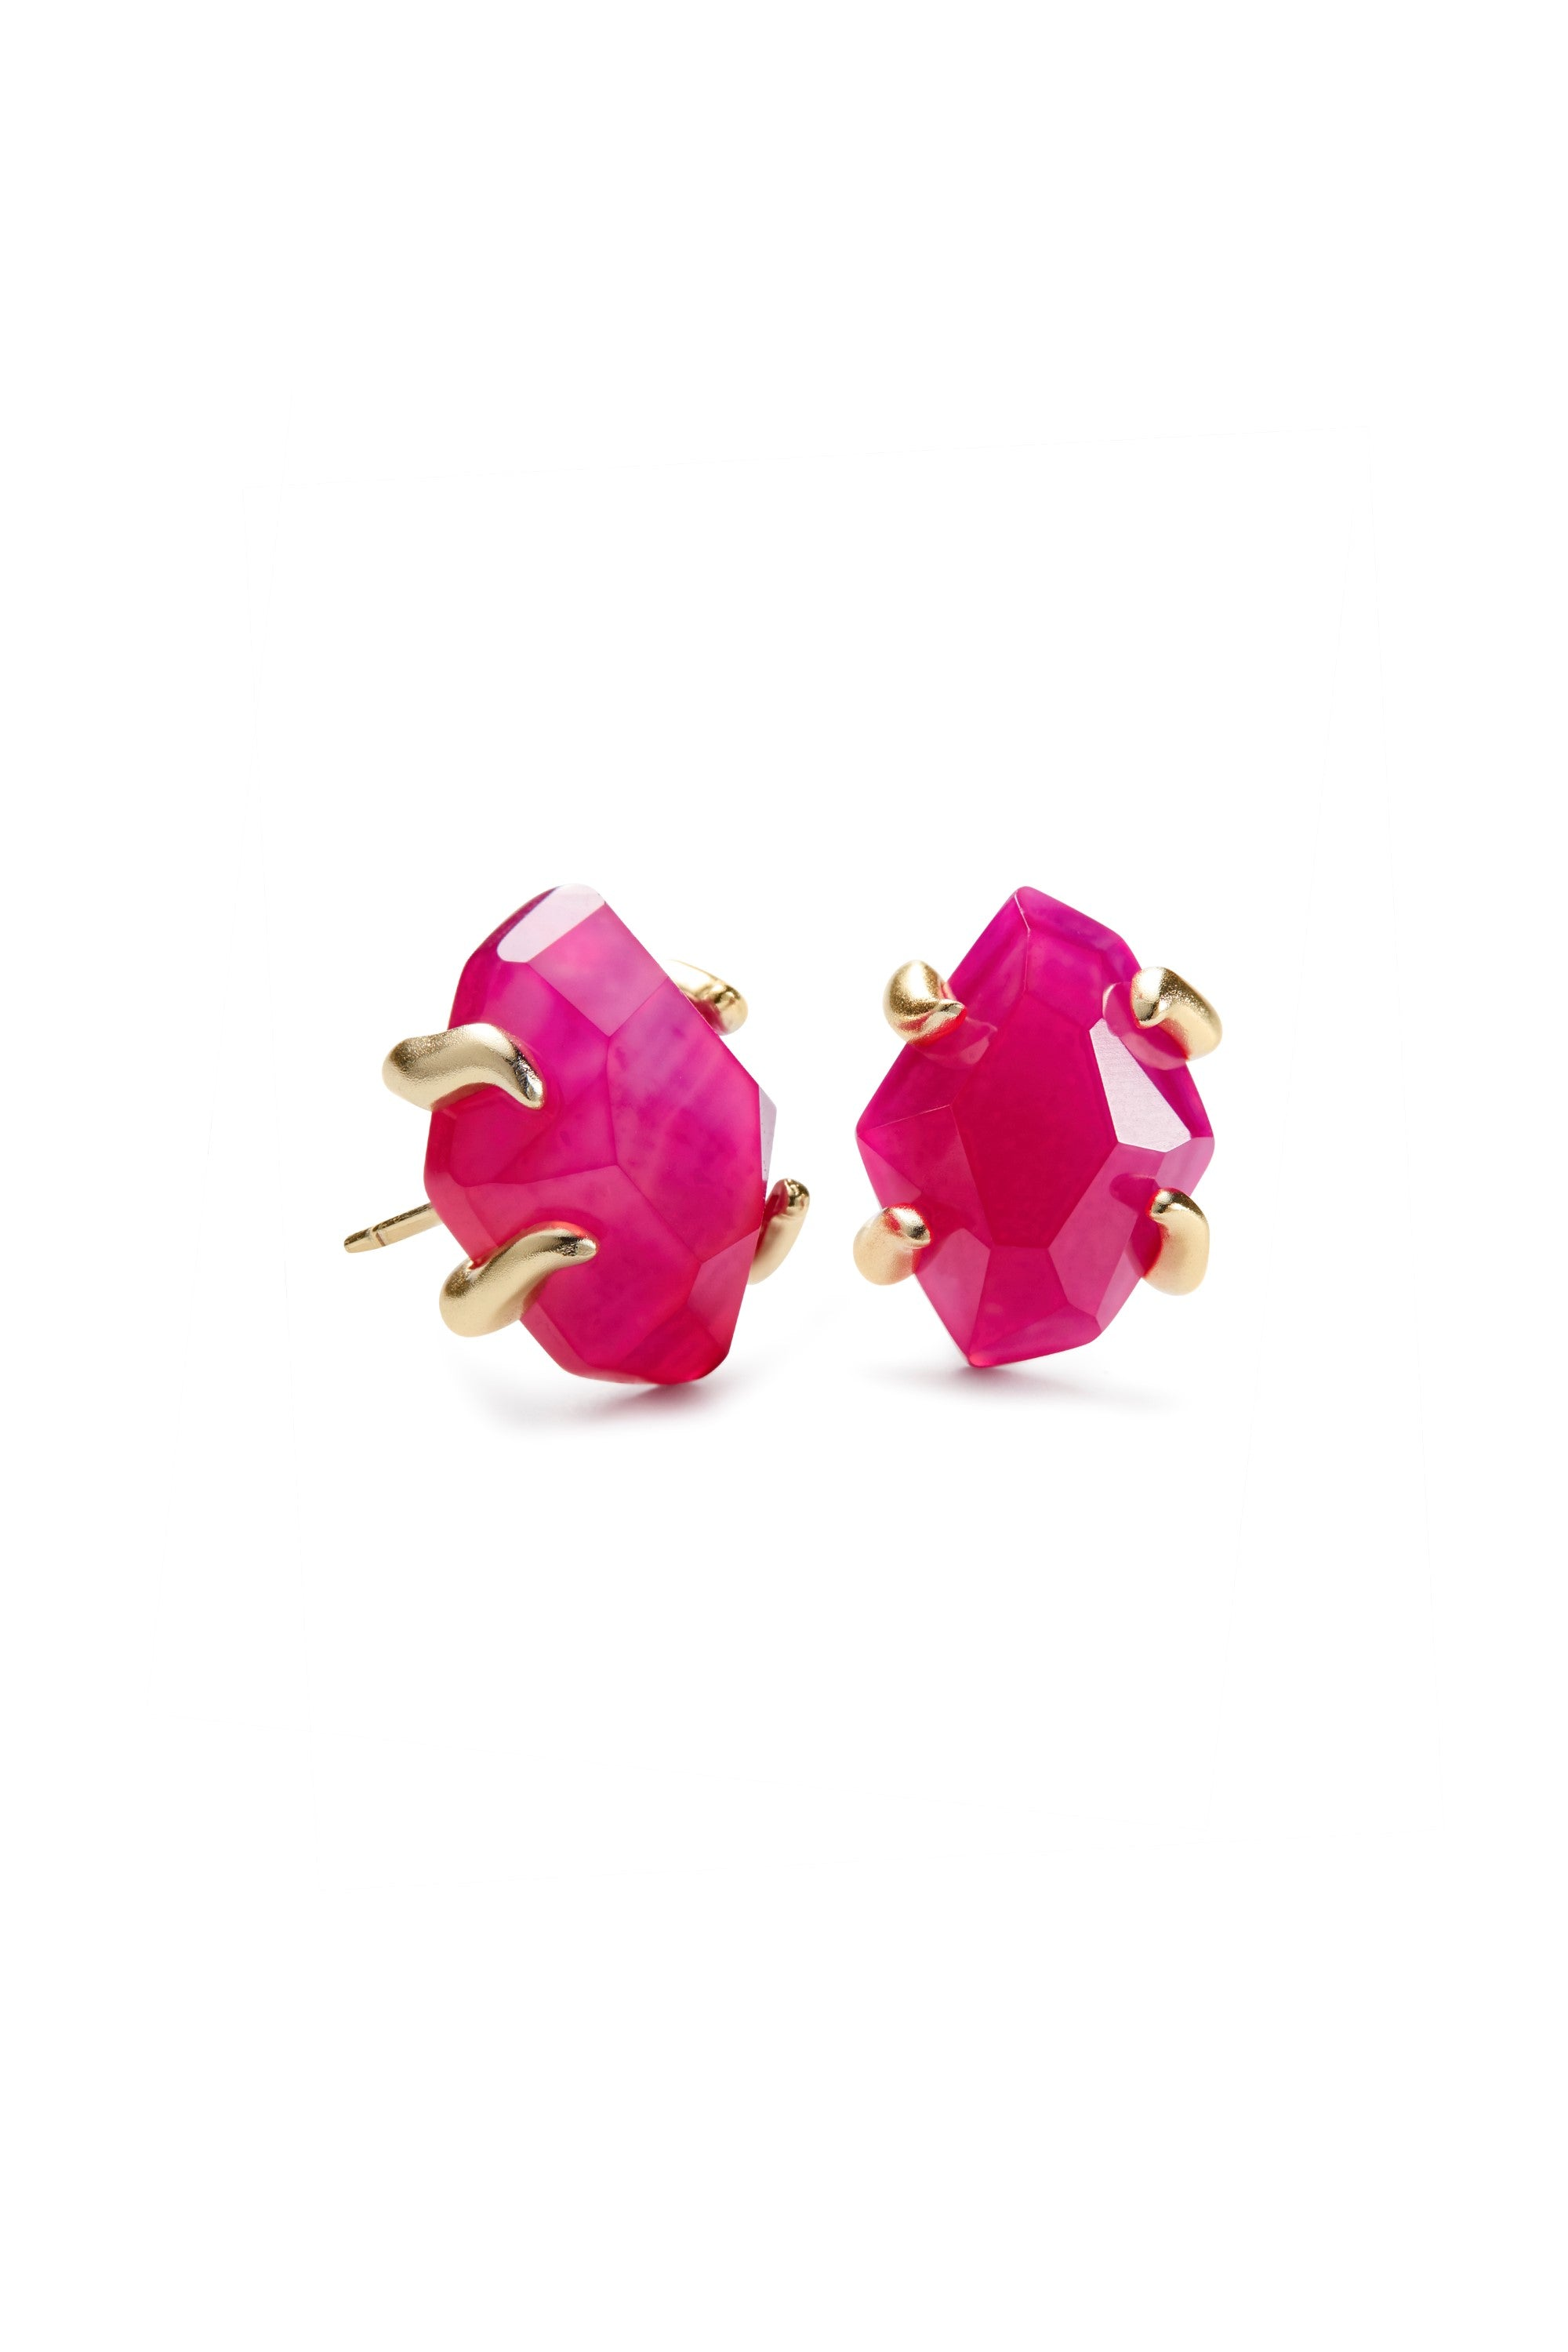 Kendra Scott Inaiyah Gold Earrings In Pink Agate